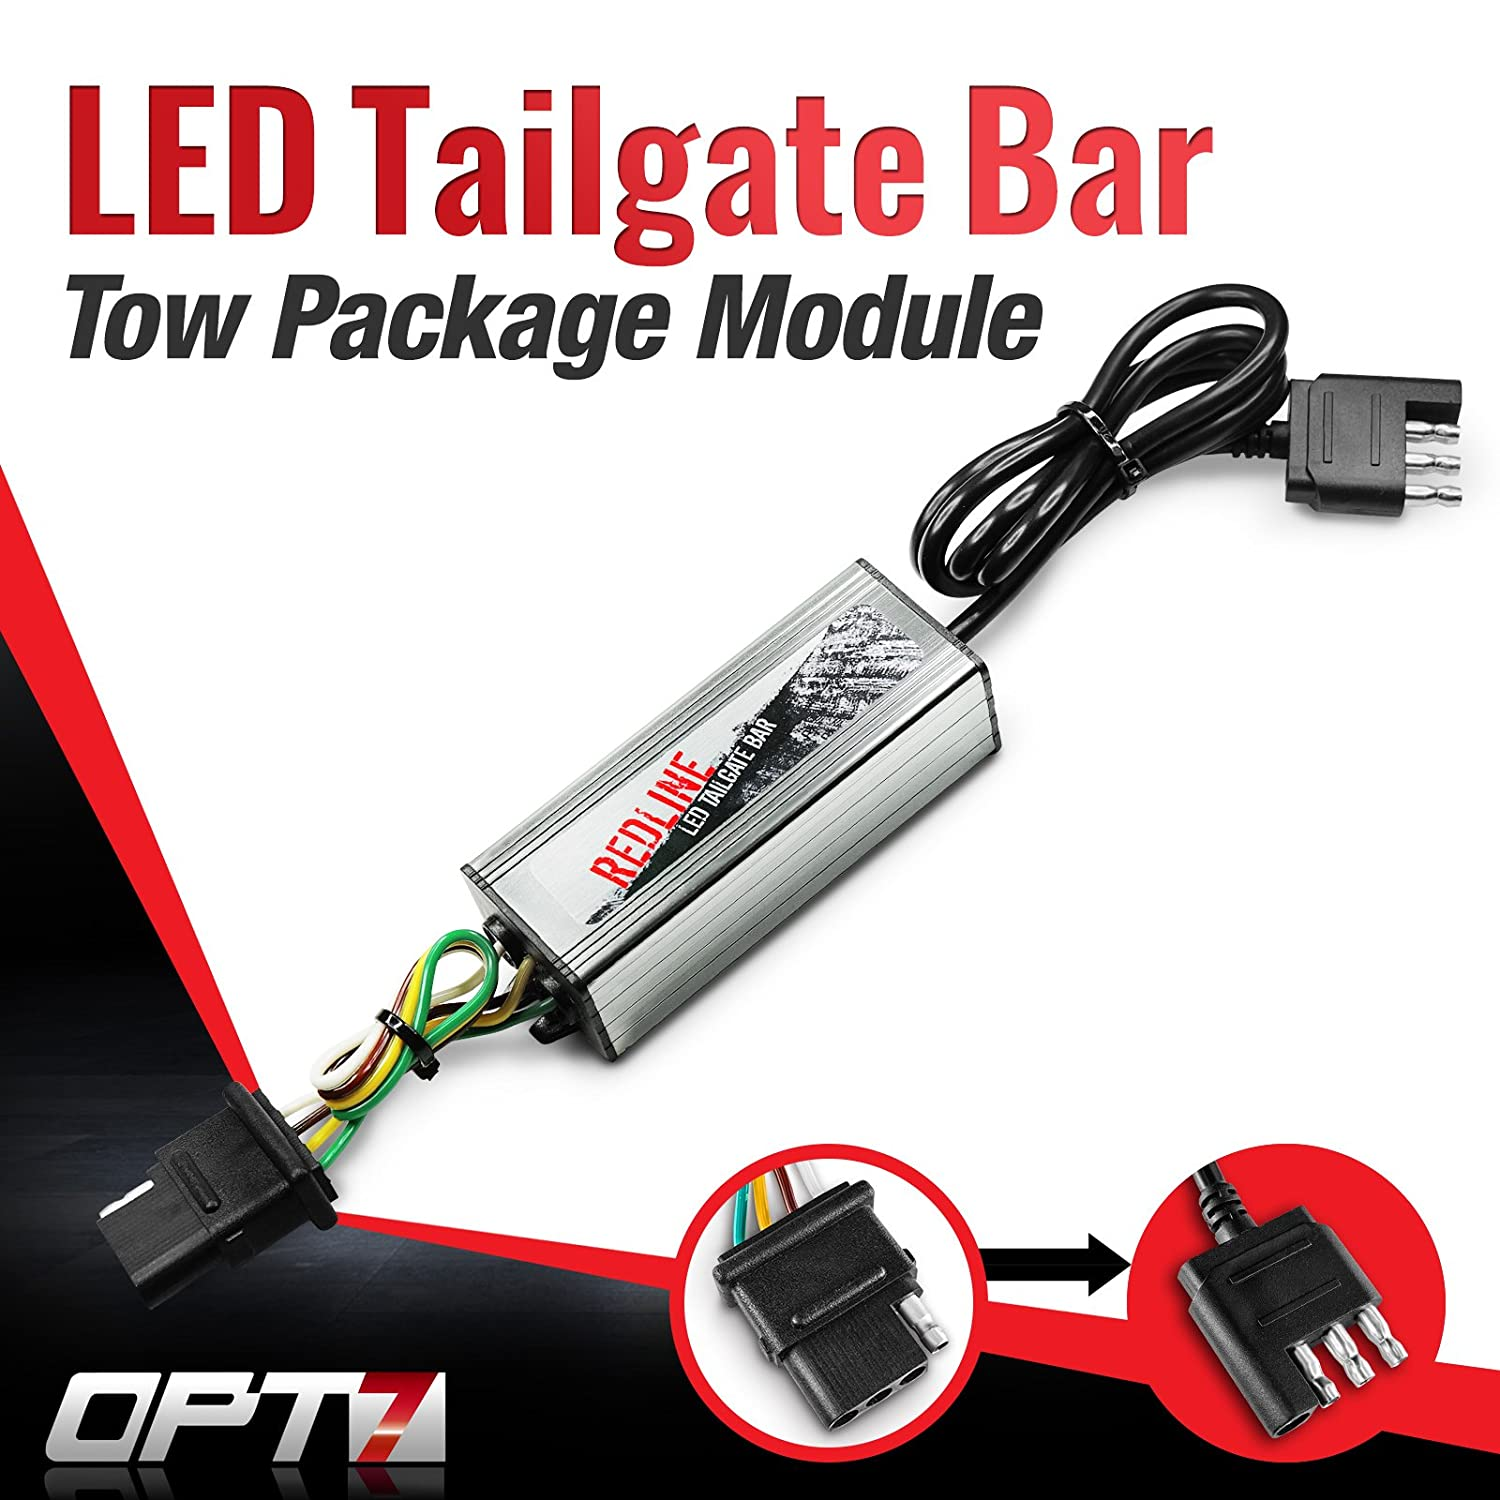 OPT7 Redline Triple LED Tailgate Bar Rear Sensor Tow Assist 4-Pin Module for Pick up Trucks with Back-up Reverse Camera or Trailer Tow Assist Package